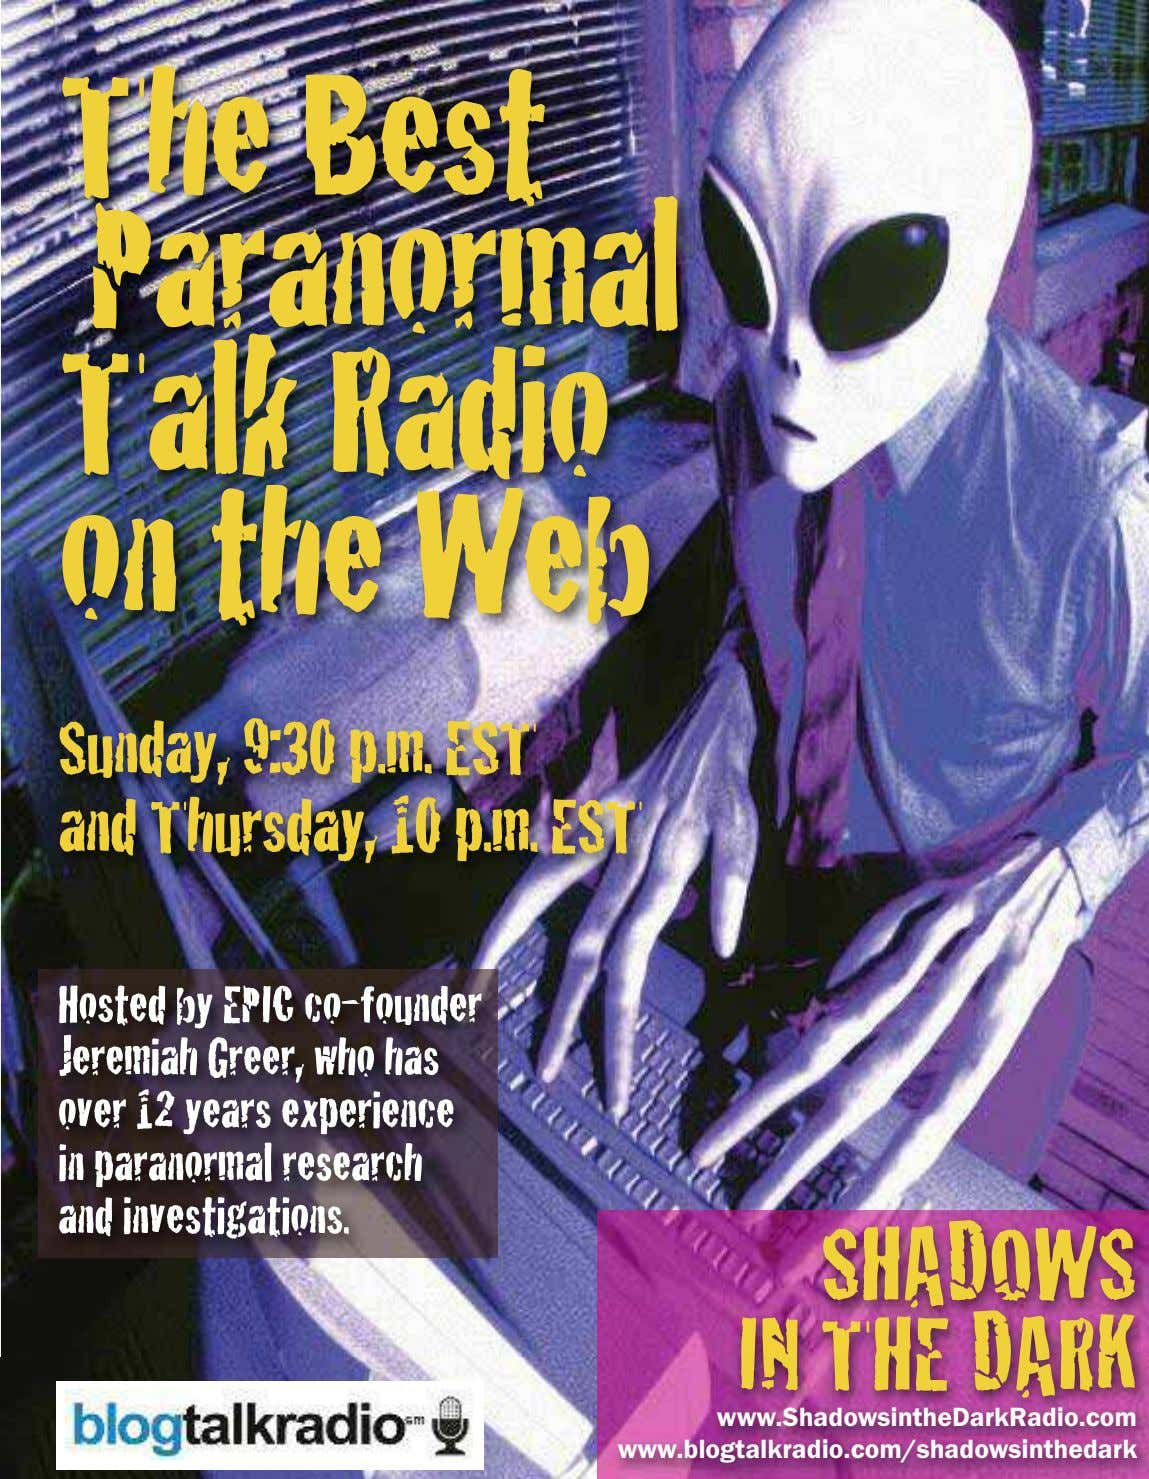 The Best Paranormal Talk Radio on the Web Sunday, 9:30 p.m. EST and Thursday, 10